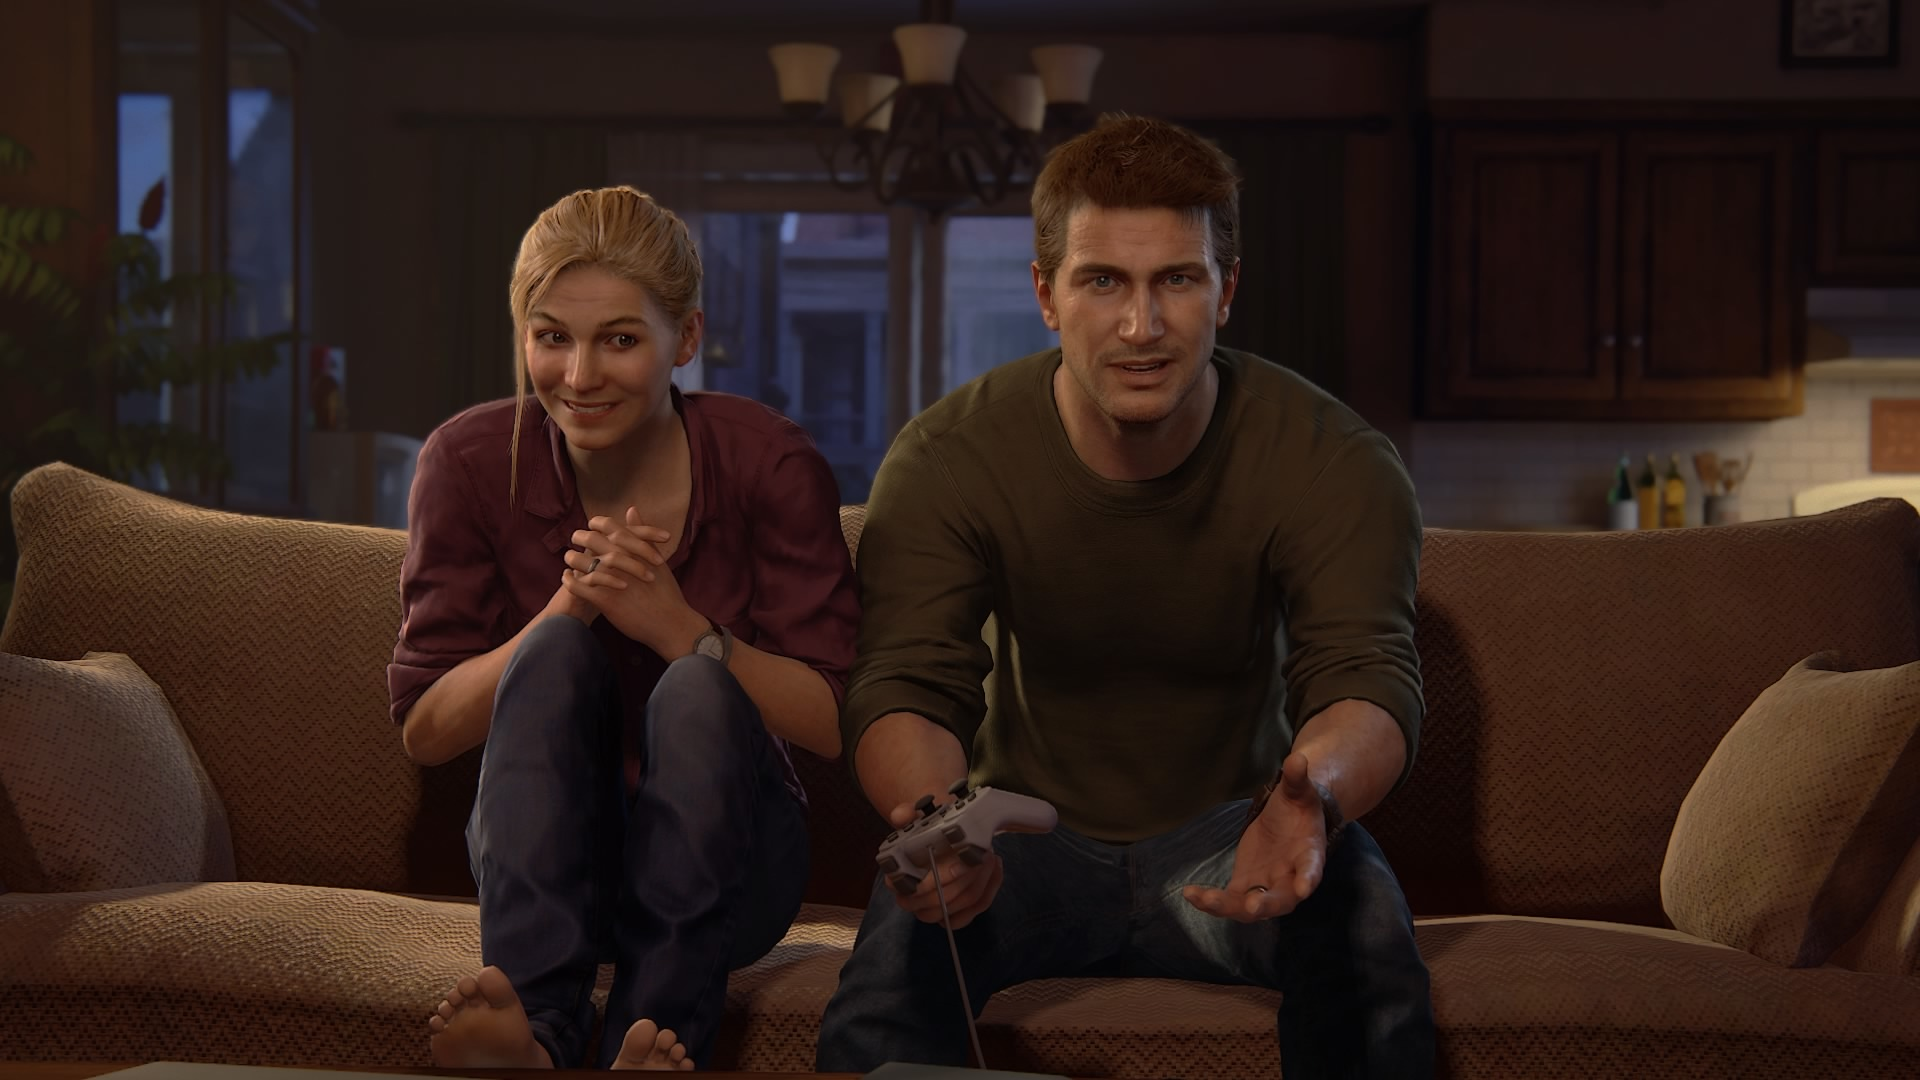 Naughty Dog's Favorite Games of 2020